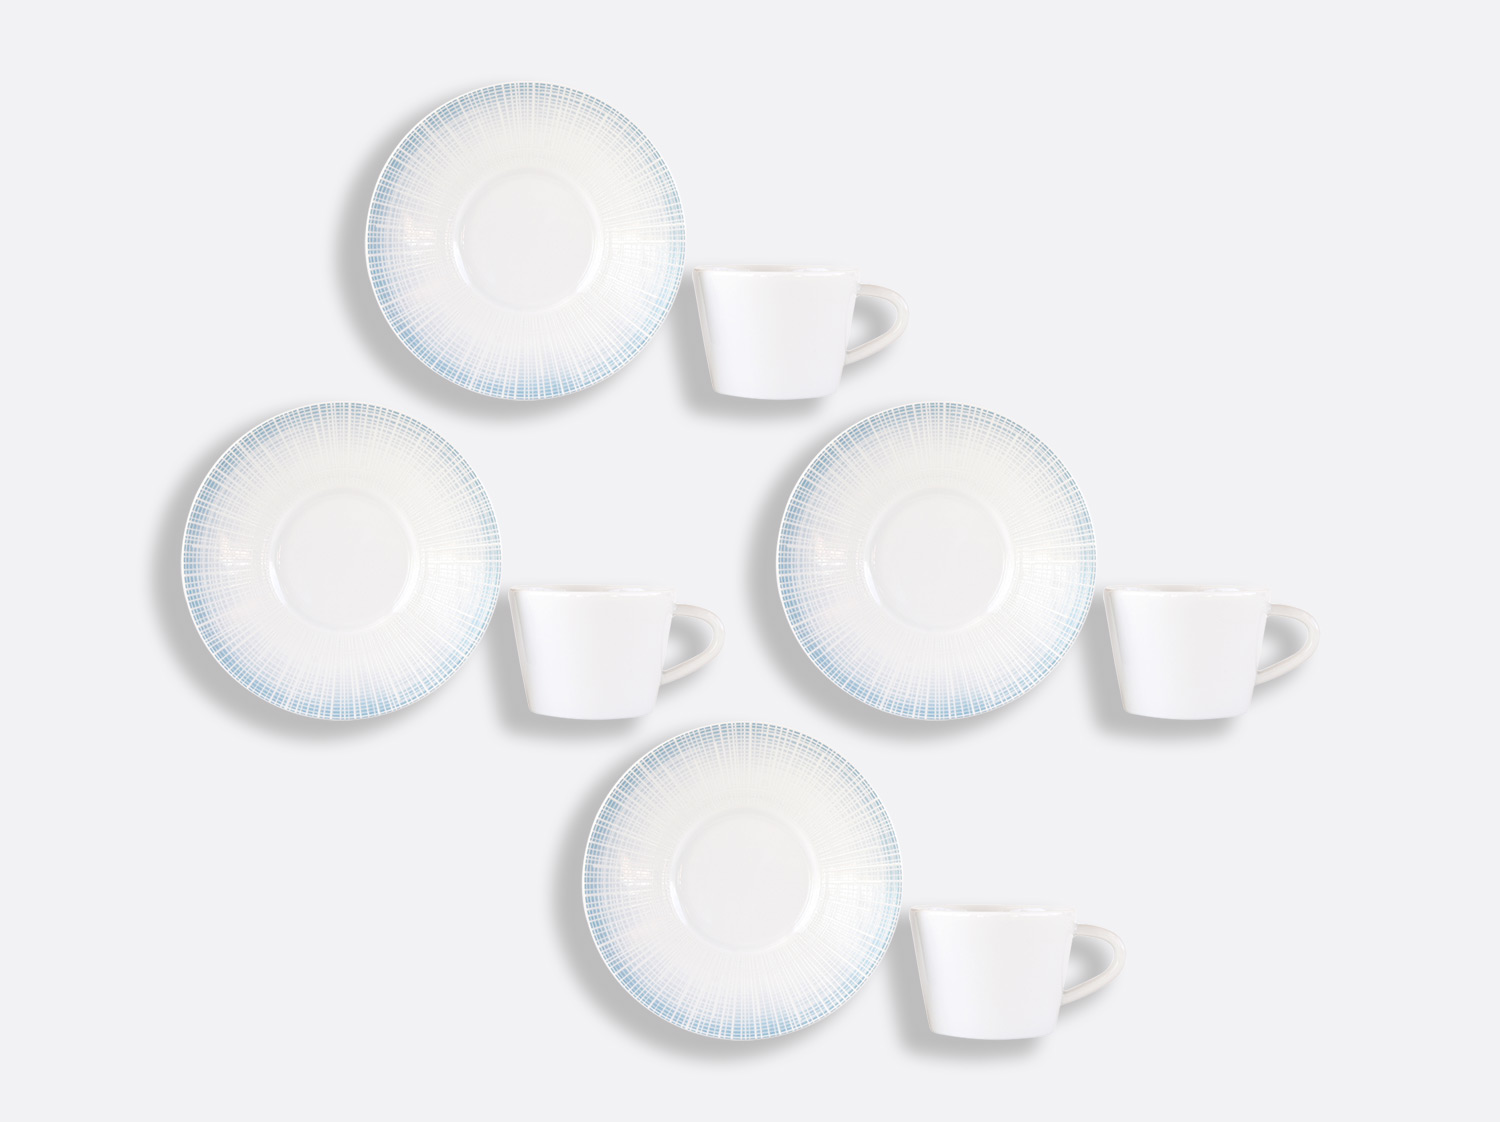 Coffret de tasses & soucoupes café 6 cl - Coffret de 4 en porcelaine de la collection Saphir Bleu Bernardaud